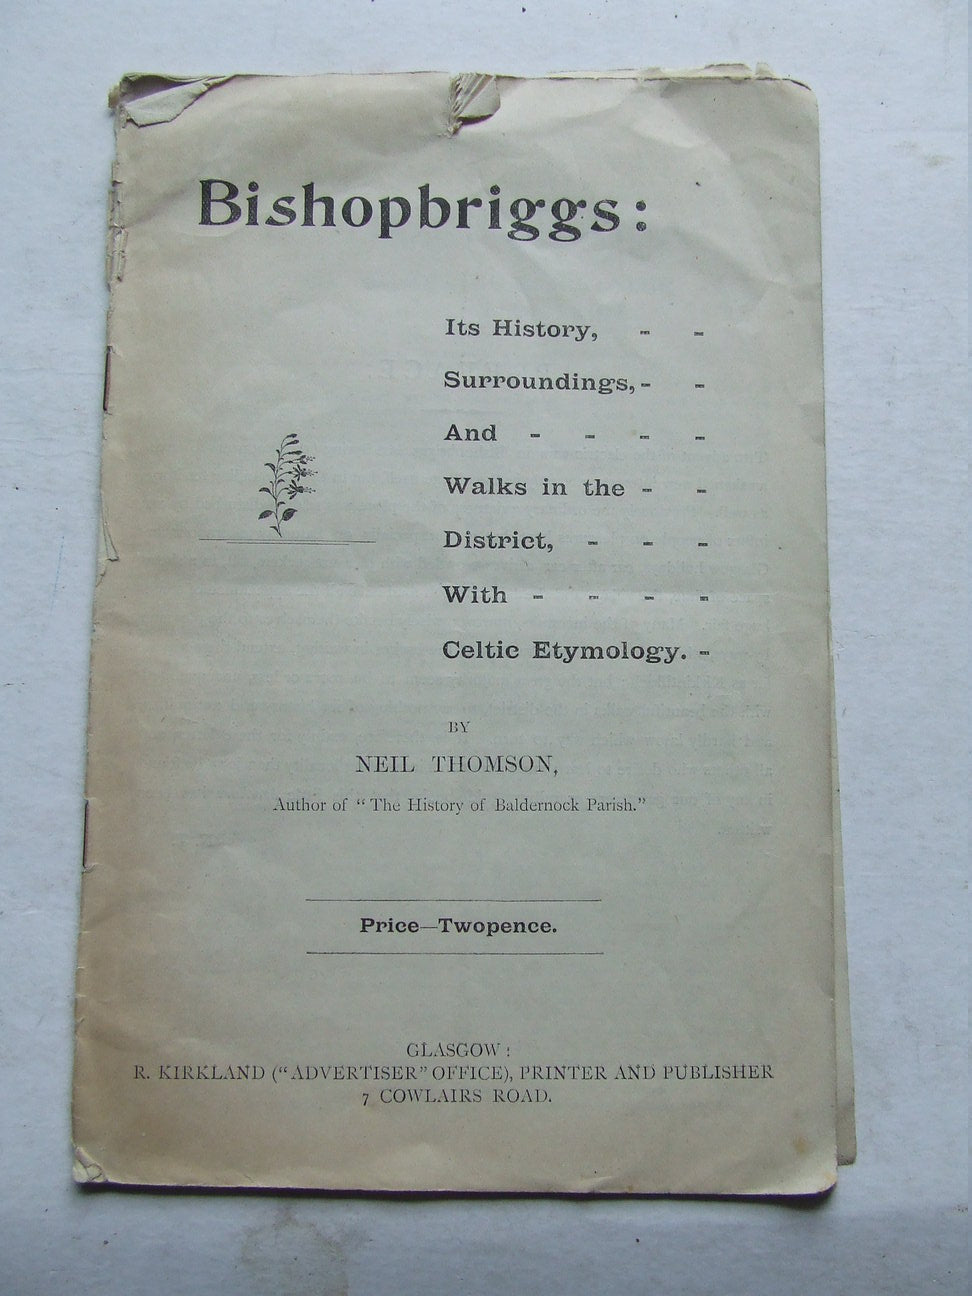 Bishopriggs, is history, surroundings